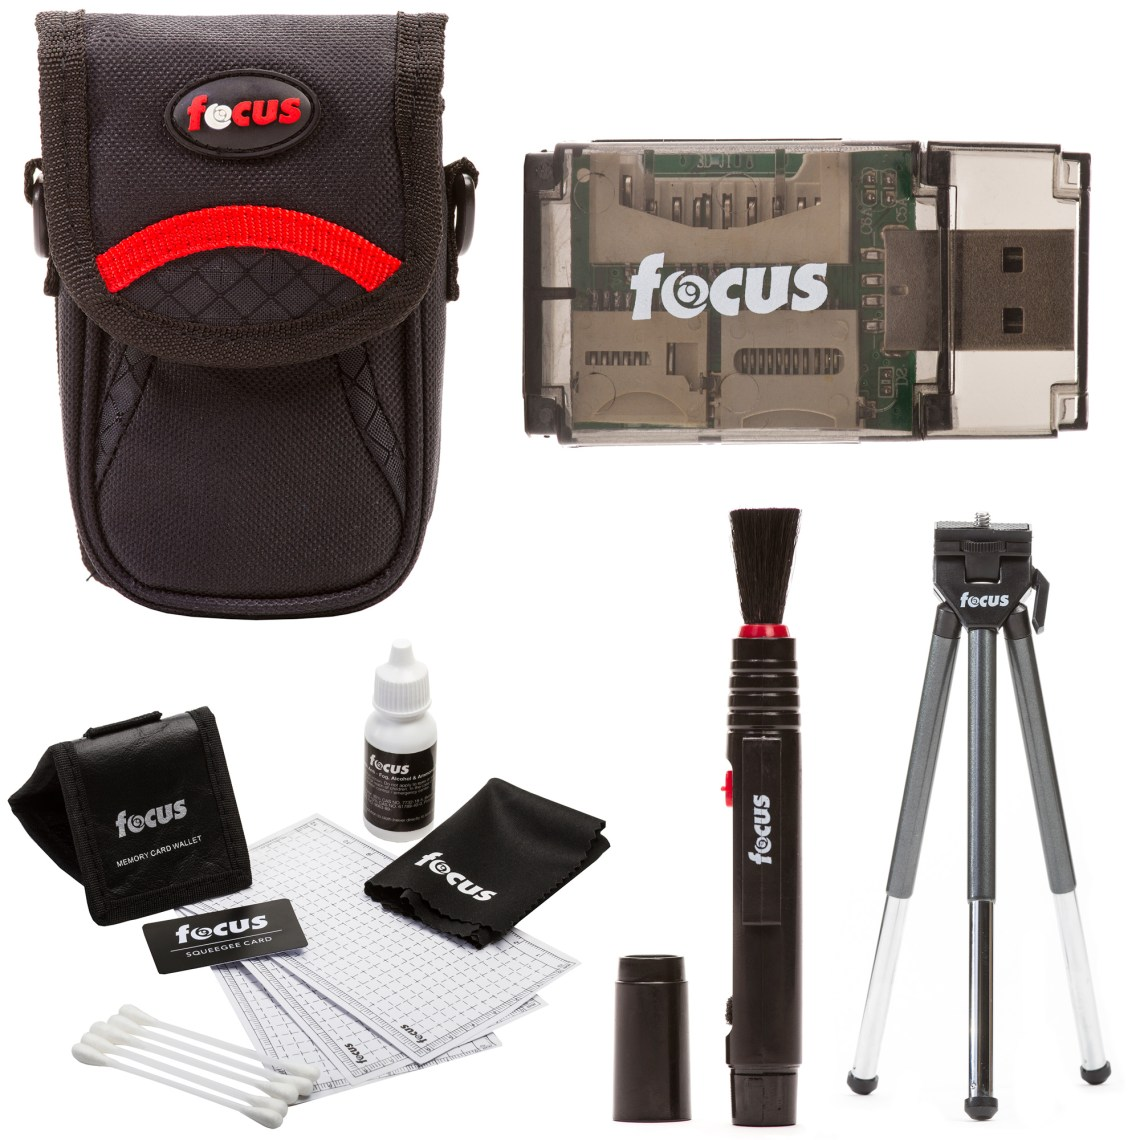 Focus Accessory Bundle for Medium Size Point and Shoot Cameras.Bundle Includes:• Focus  Standard Large Digital Camera Case • Focus 5 Piece Digital Camera Accessory Kit •  Focus Lens Cleaning Pen• Focus All In One High Speed USB 2.0 Card Reader• Focus Deluxe 8 Inch Table Tripod